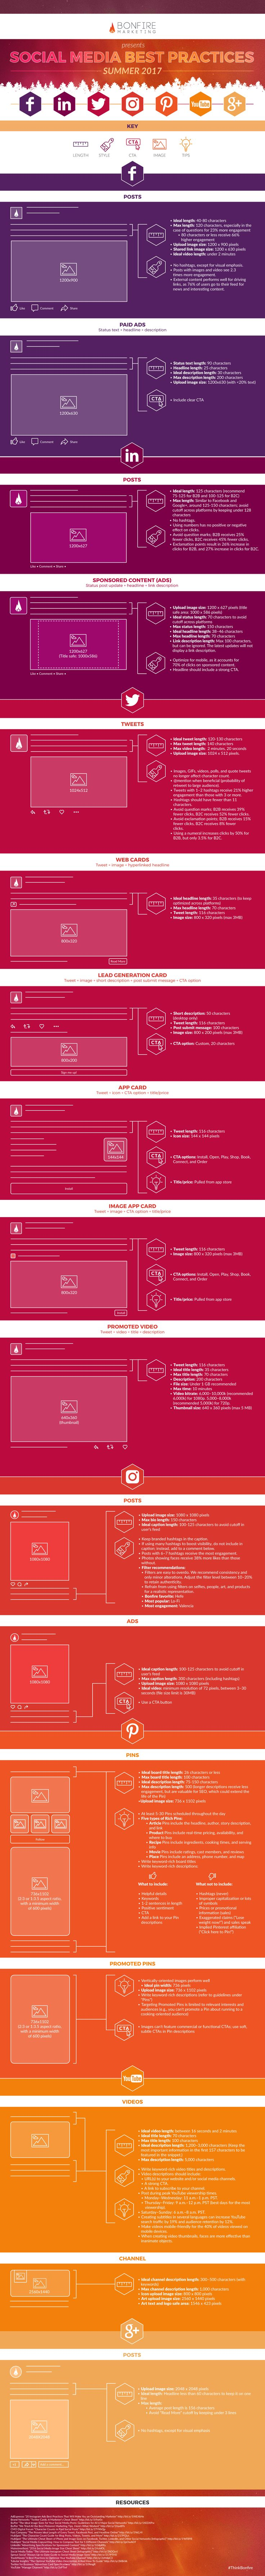 The Ultimate Social Media Best Practices 2017 - #Infographic